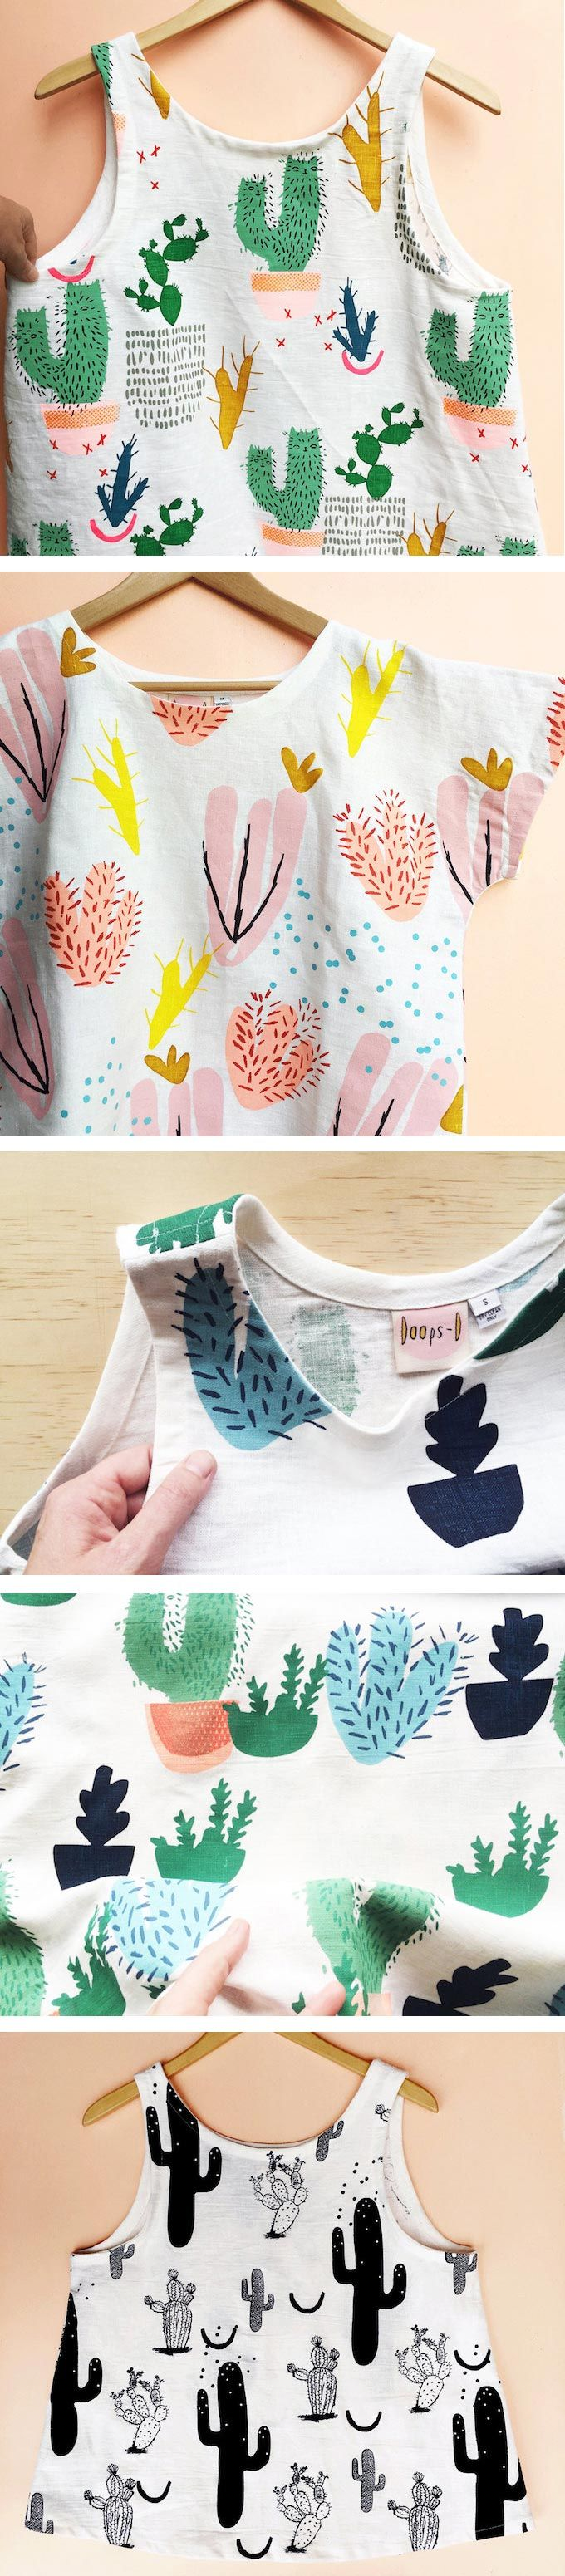 Doops Design Makes Colorful Cacti Clothing